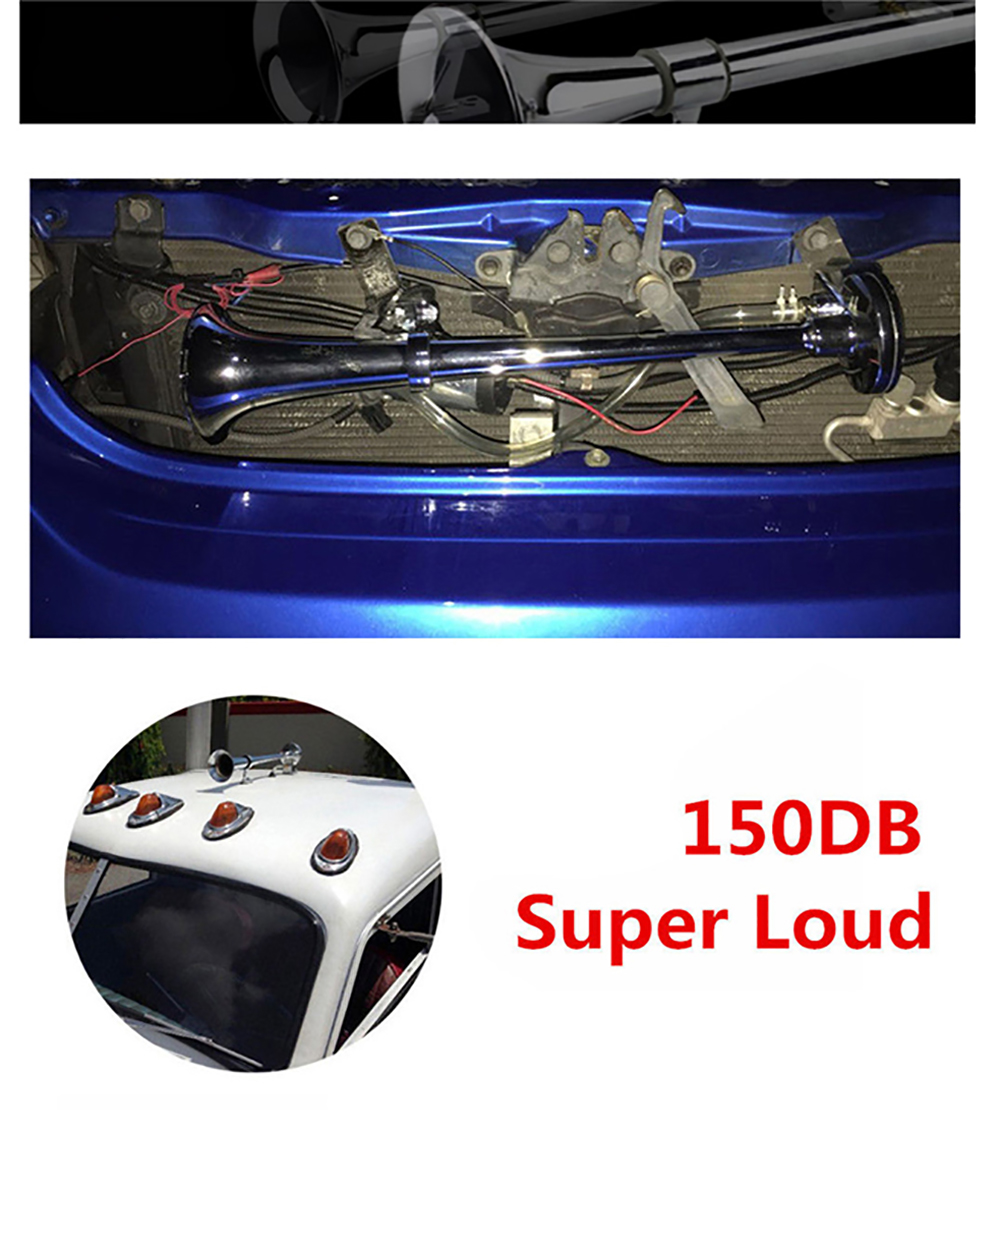 Image 3 - Free shipping 150DB Super Loud 12V/24V Single Trumpet Air Horn Compressor Car Lorry Boat Motorcycle AH015-in Multi-tone & Claxon Horns from Automobiles & Motorcycles